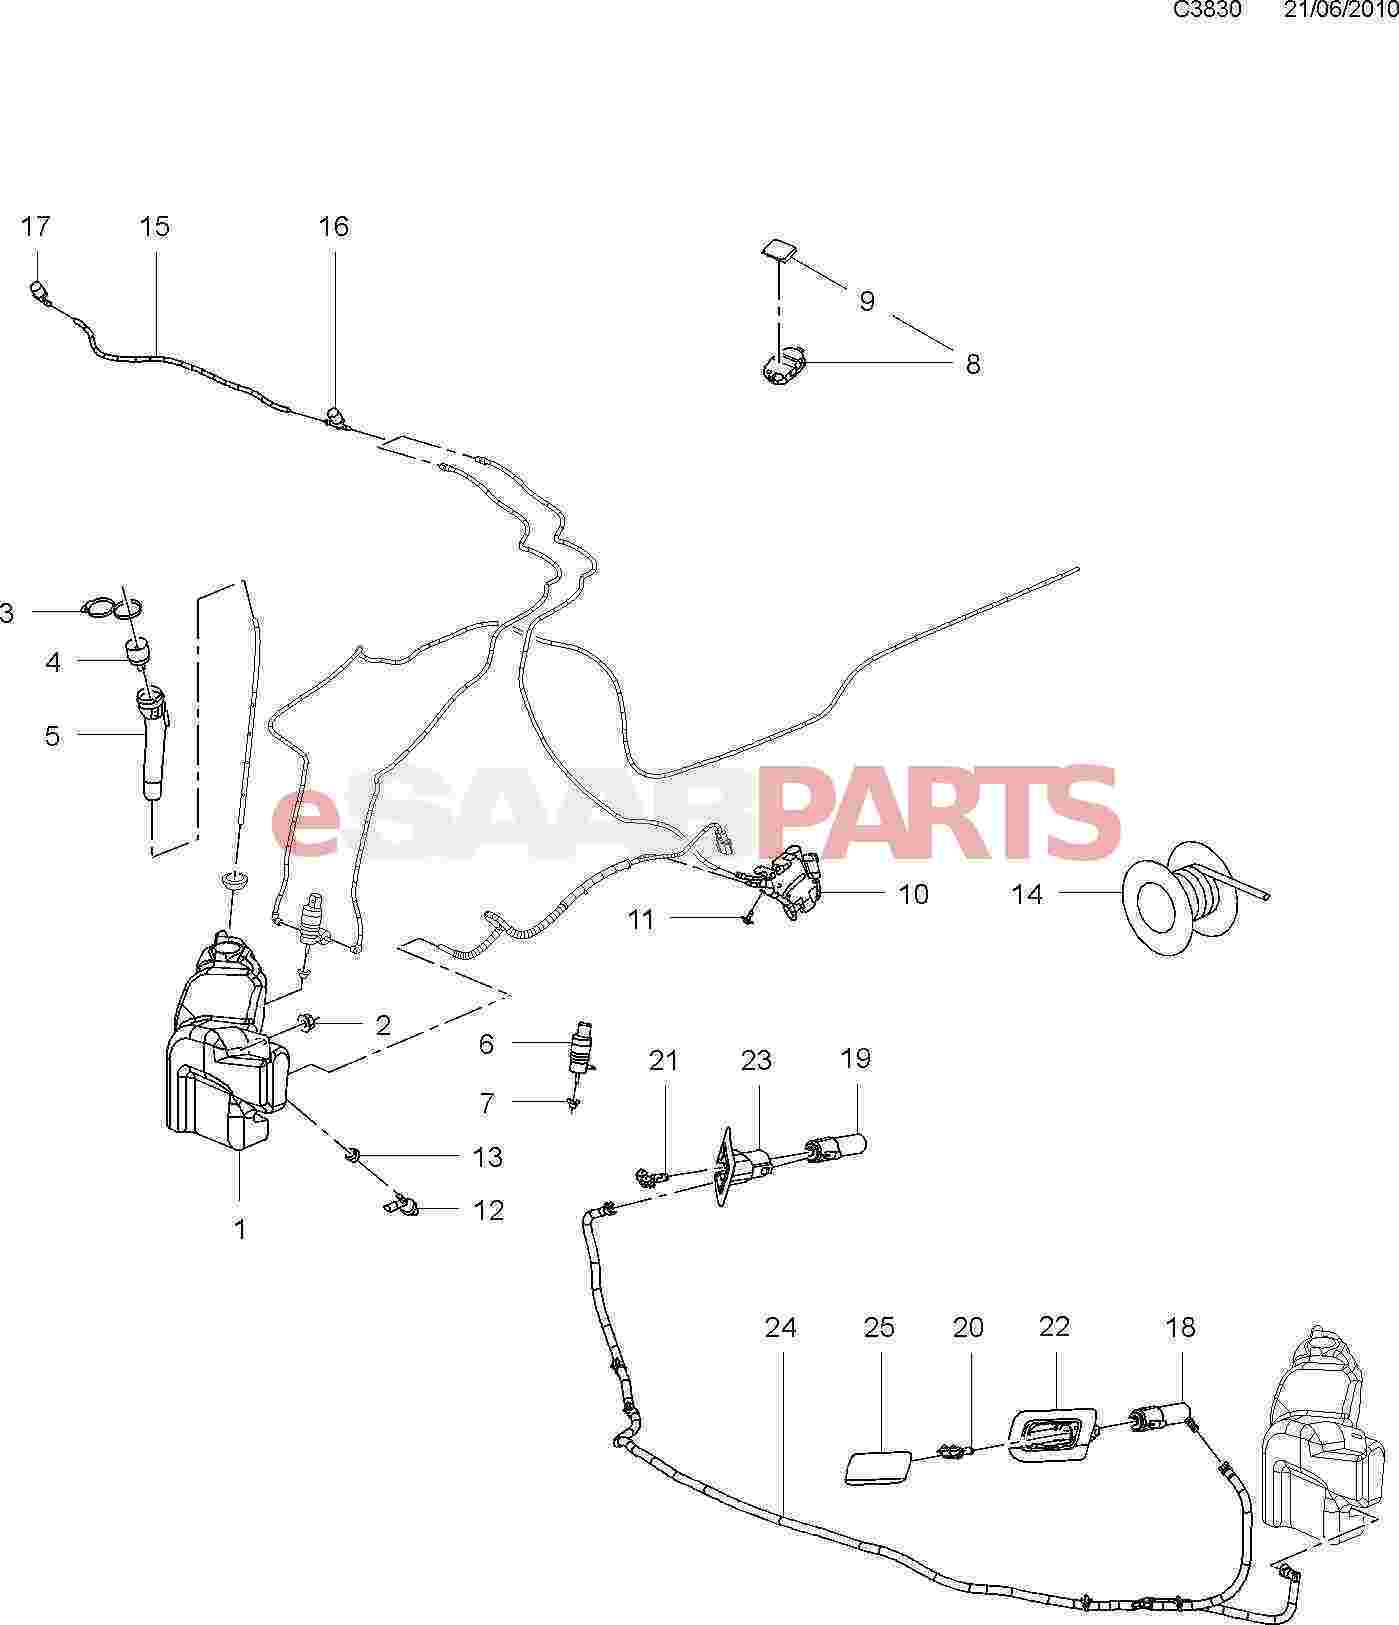 eSaabParts.com - Saab 9-5 (650) > Electrical Parts > Wipers & Washing  System > Washer System & Headlamp Washers